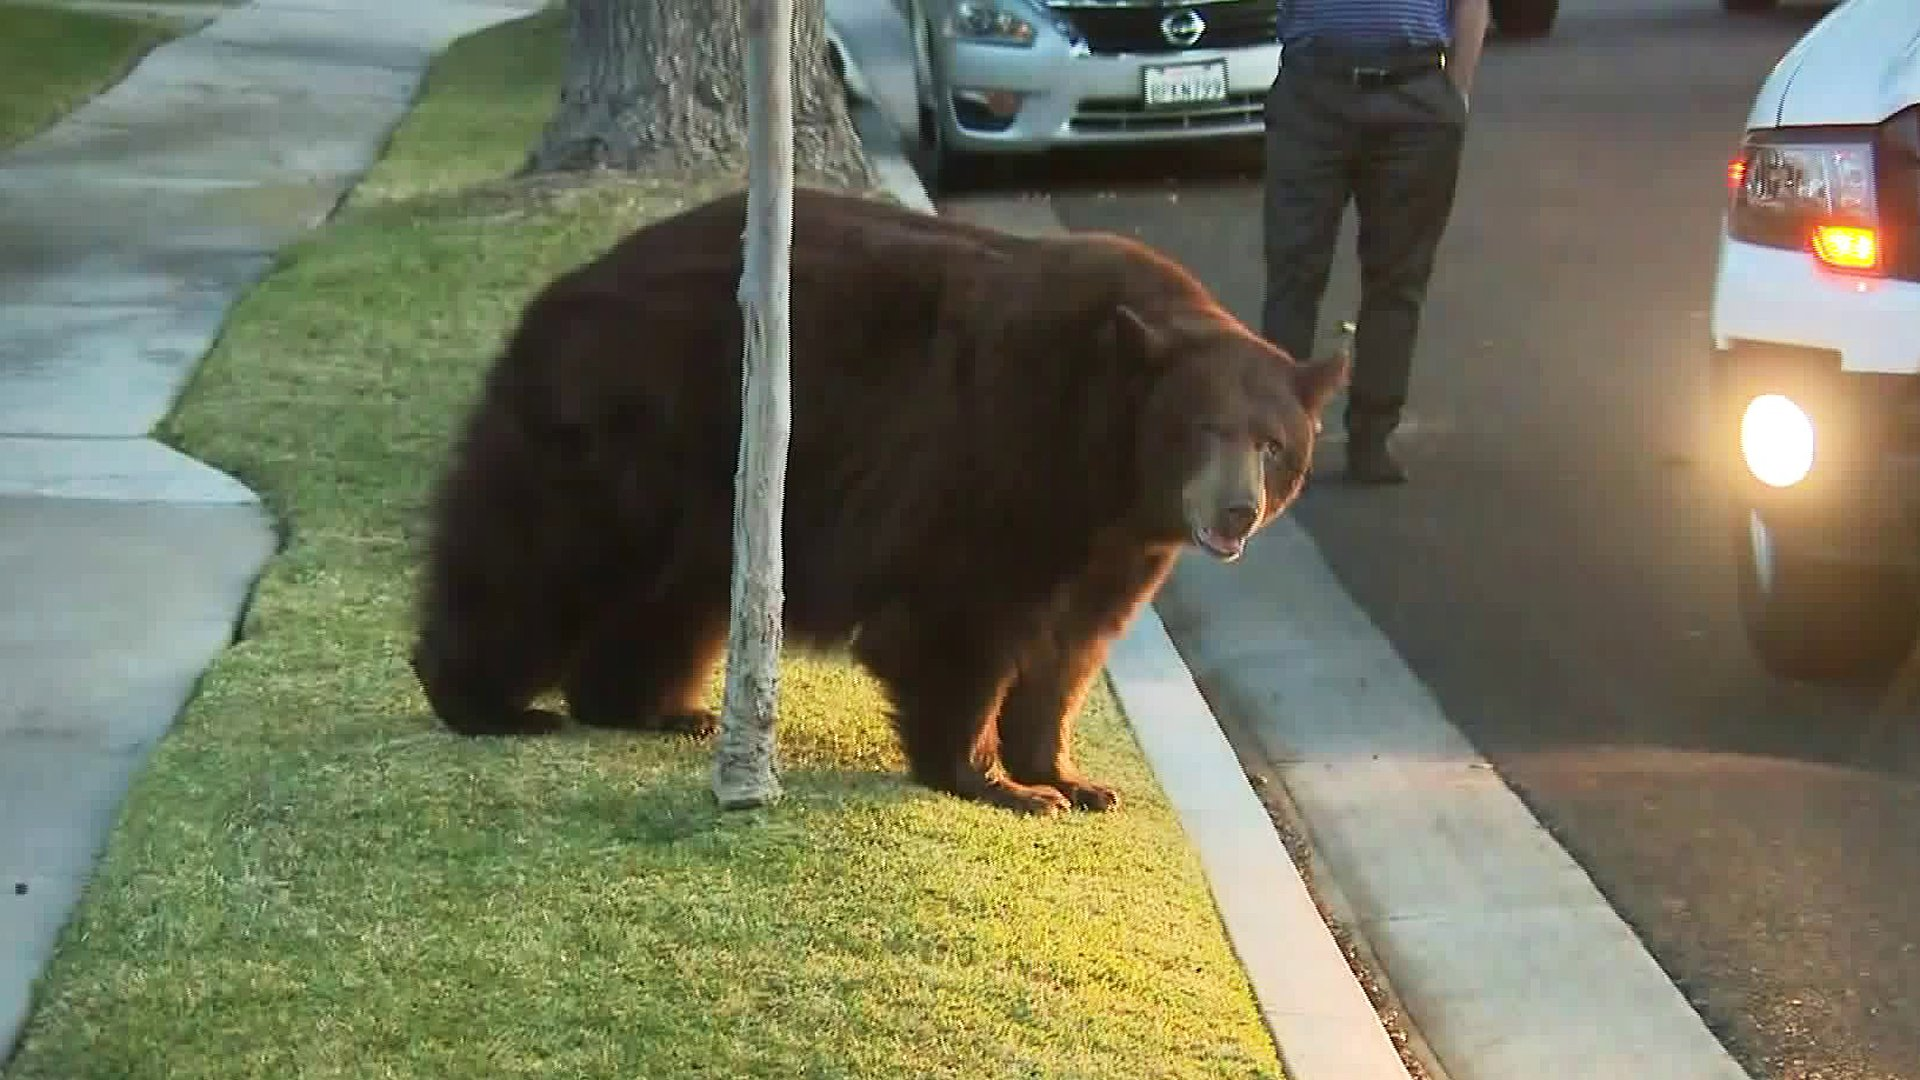 A bear in Monrovia walks near our news van on Feb. 21, 2020. (Credit: KTLA)